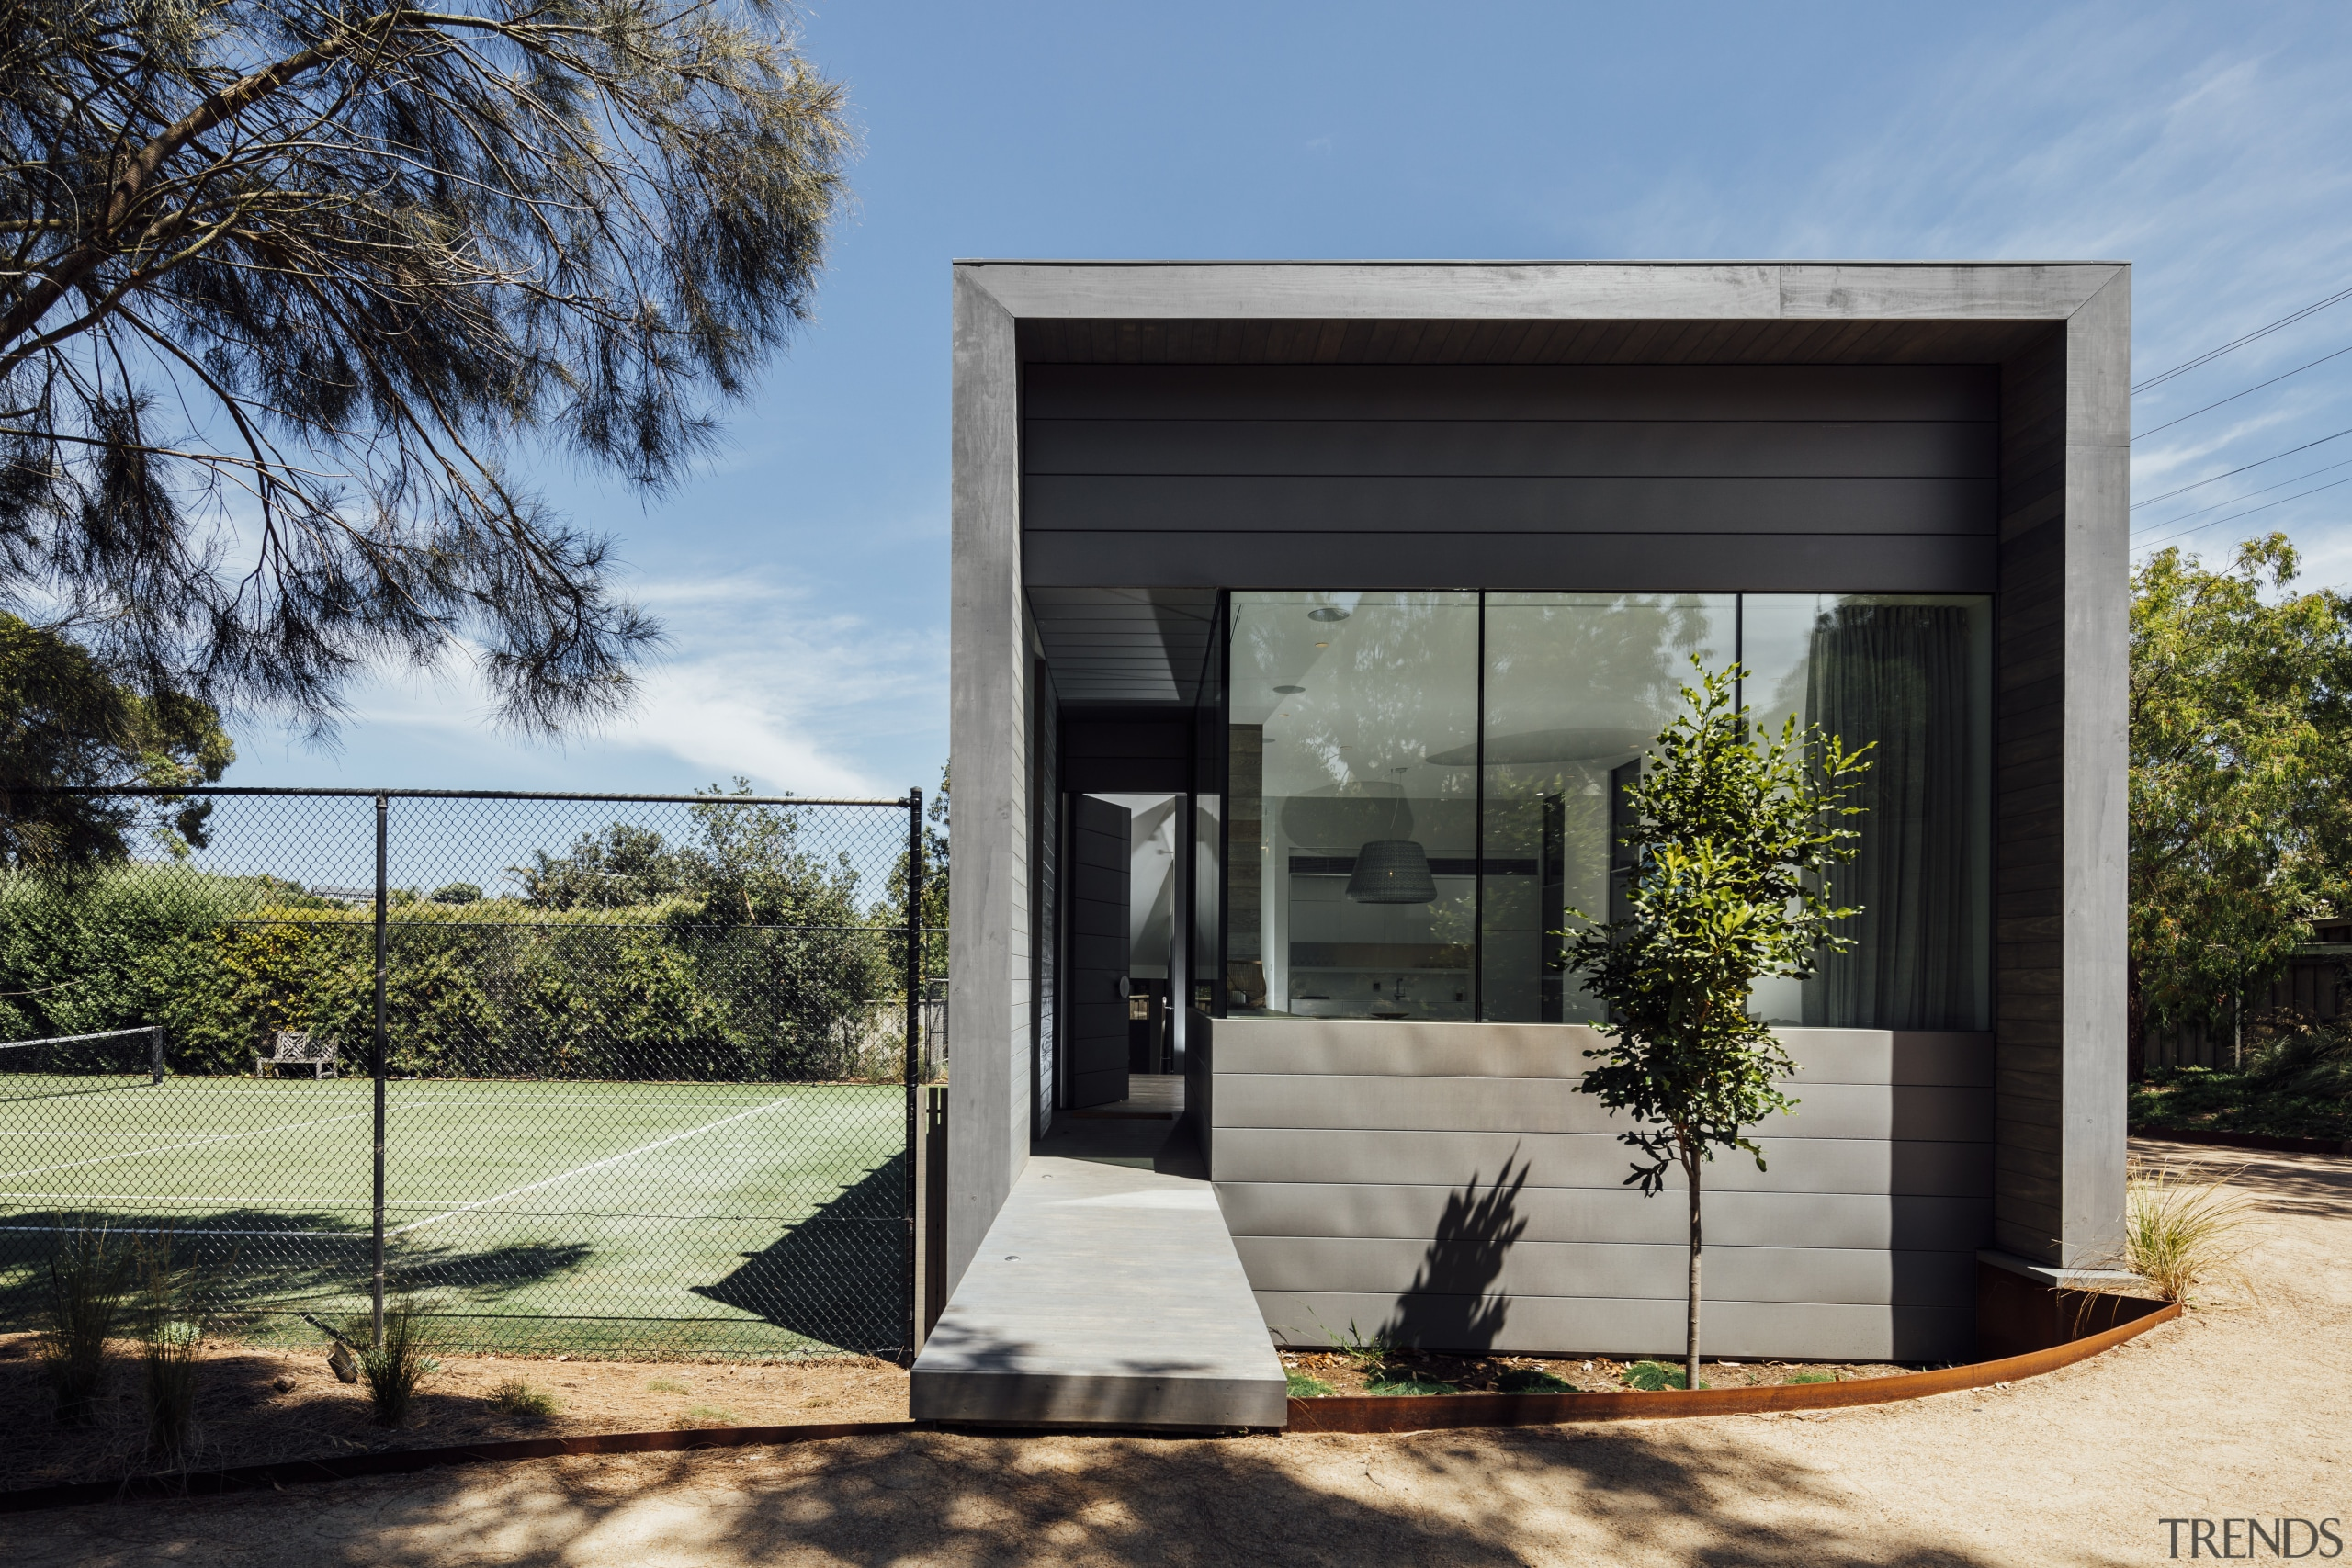 A small ramp leads up to this homes architecture, building, facade, home, house, real estate, black